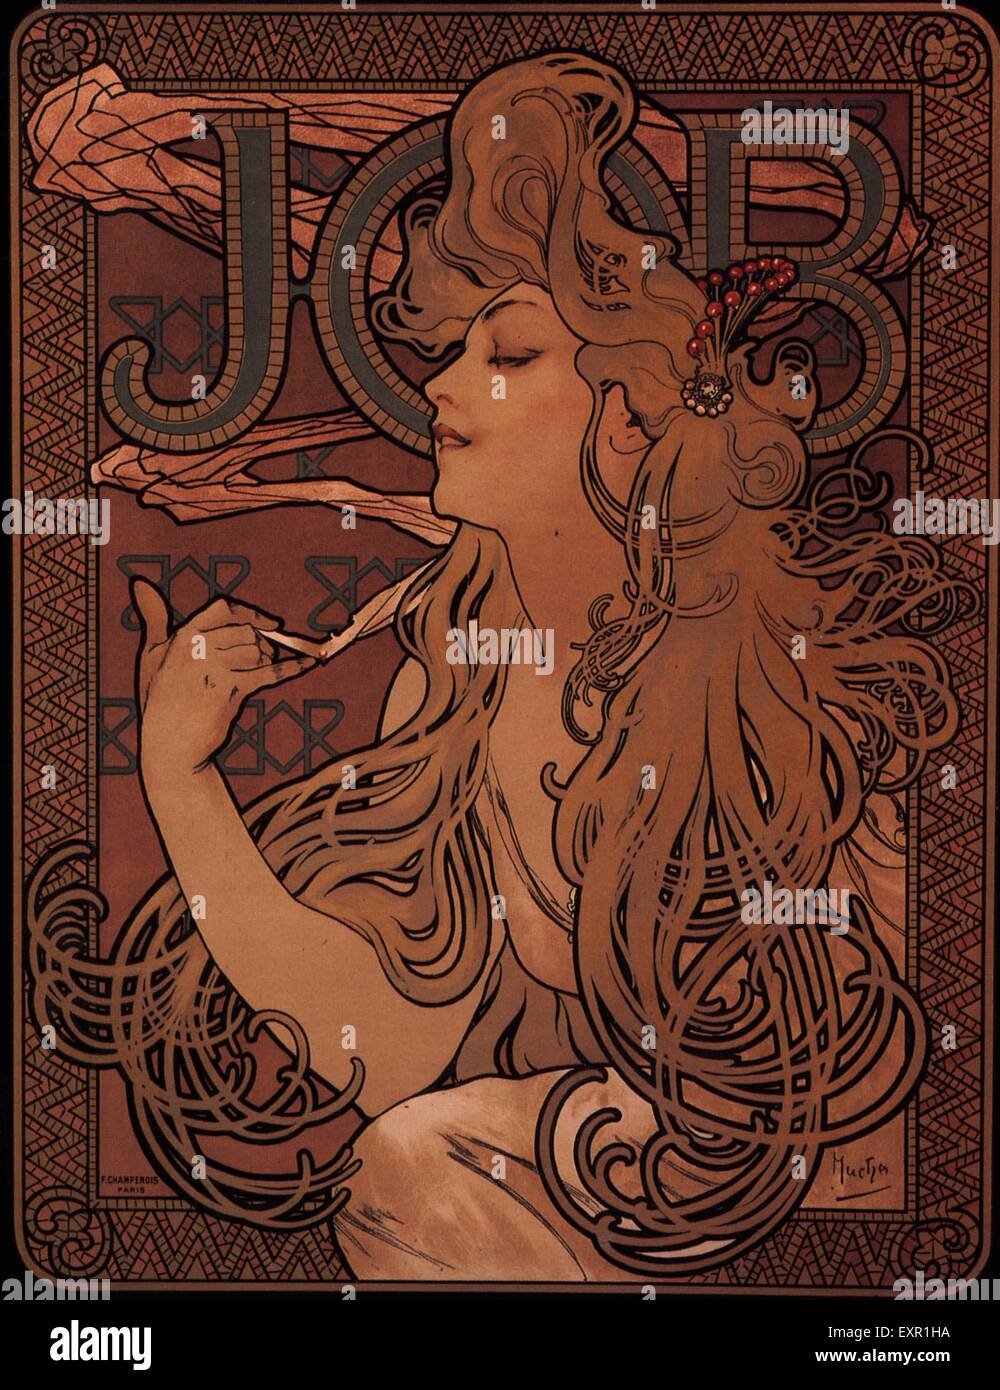 1890s France Mucha Poster - Stock Image